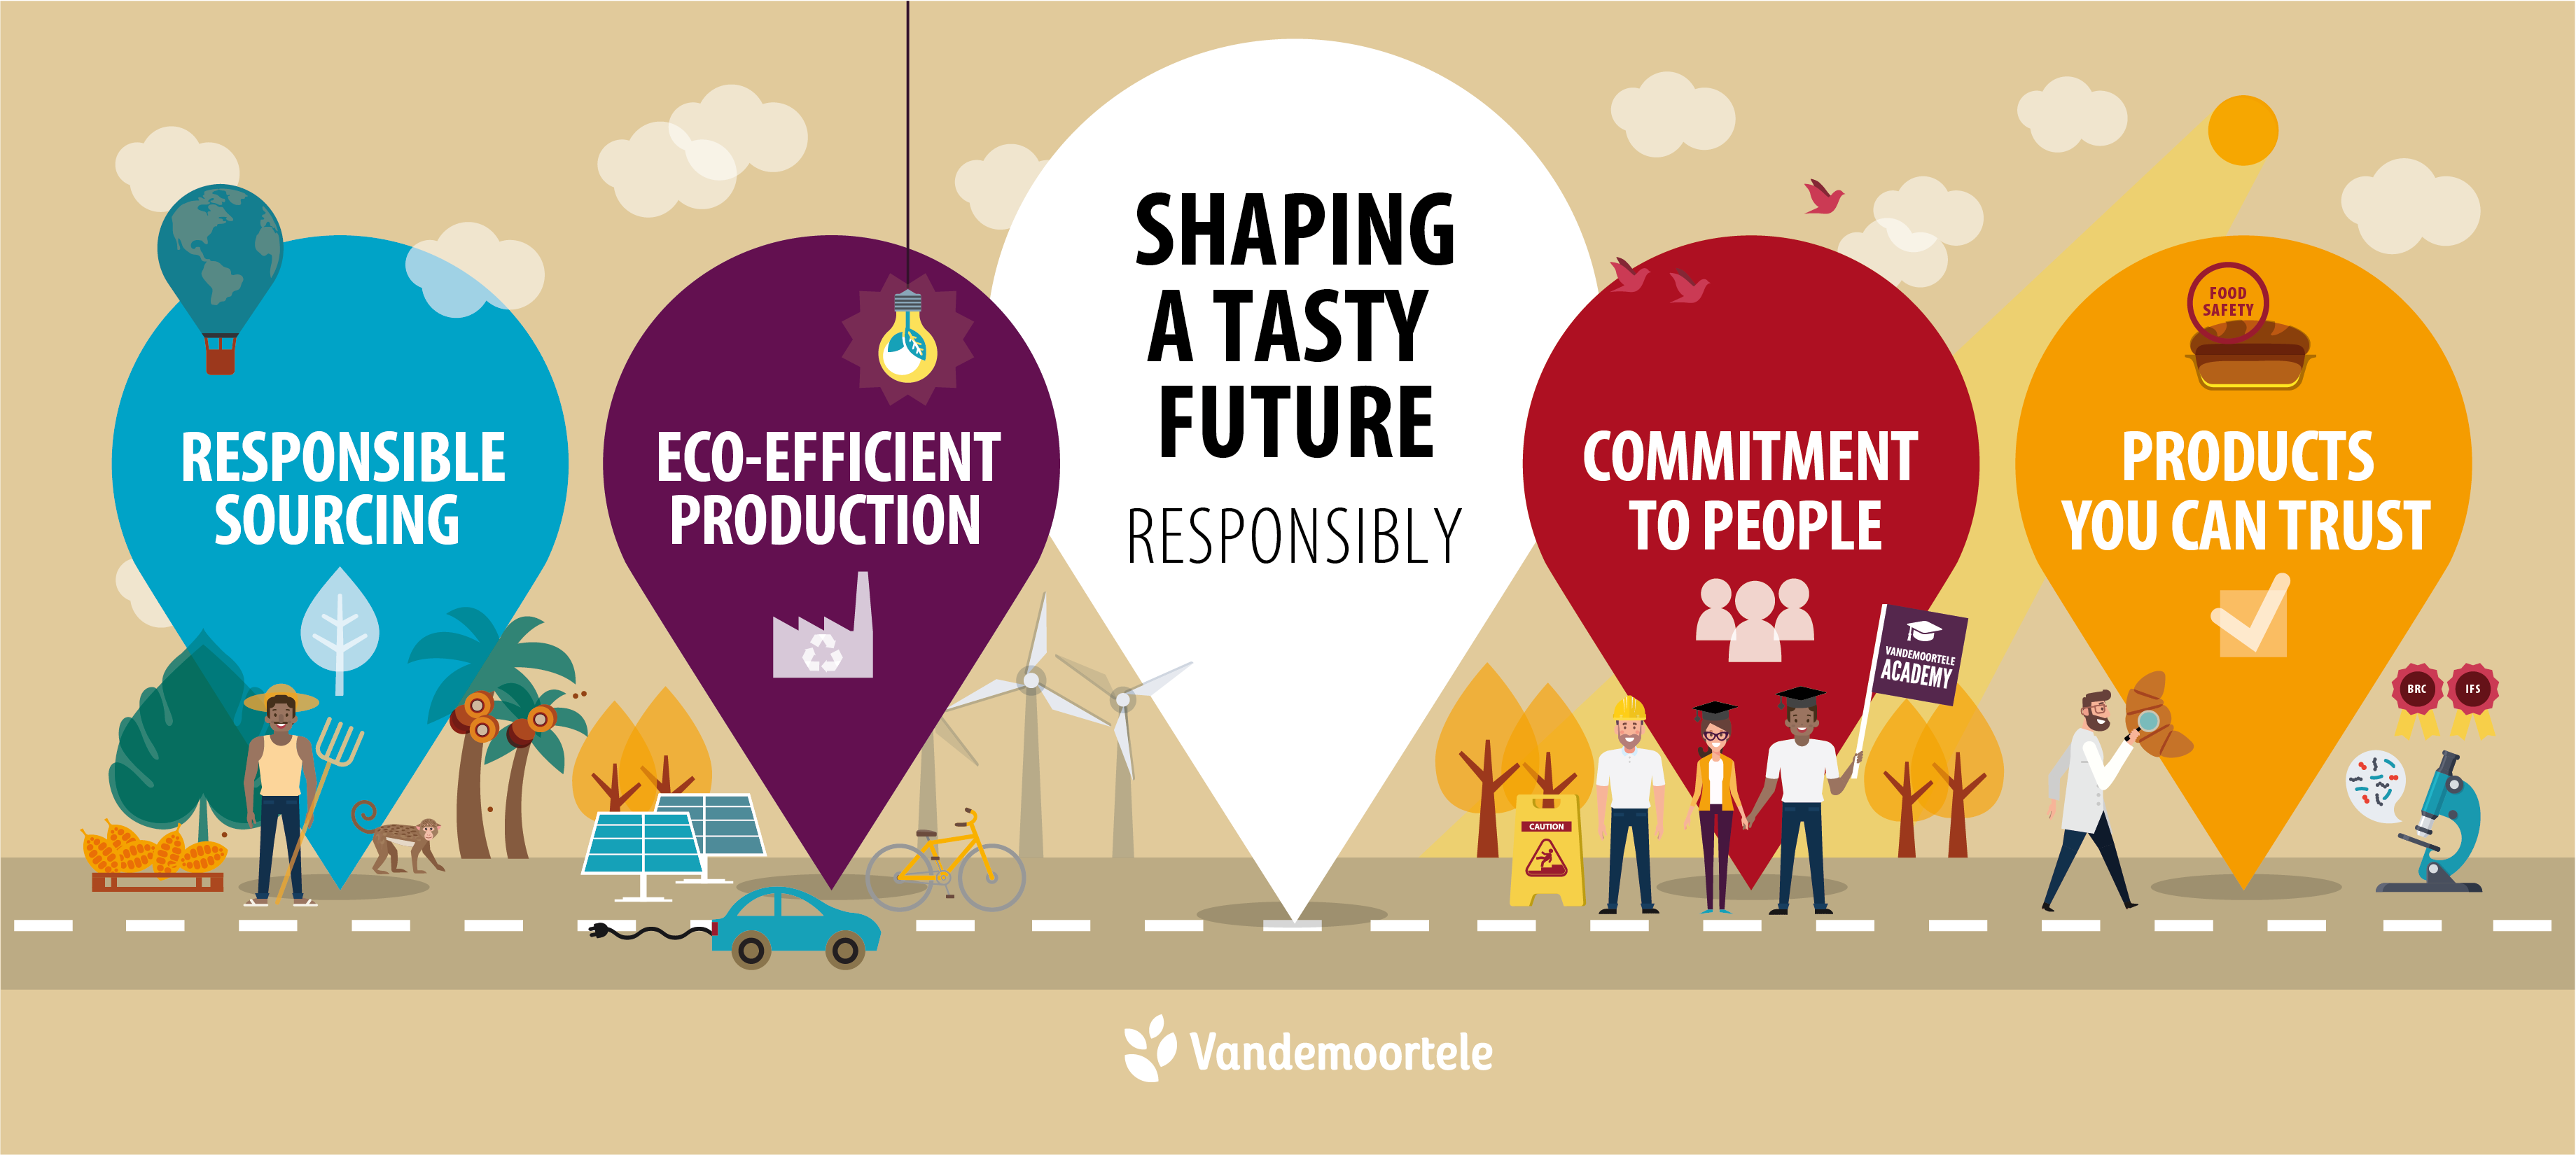 sustainability strategy Vandemoortele